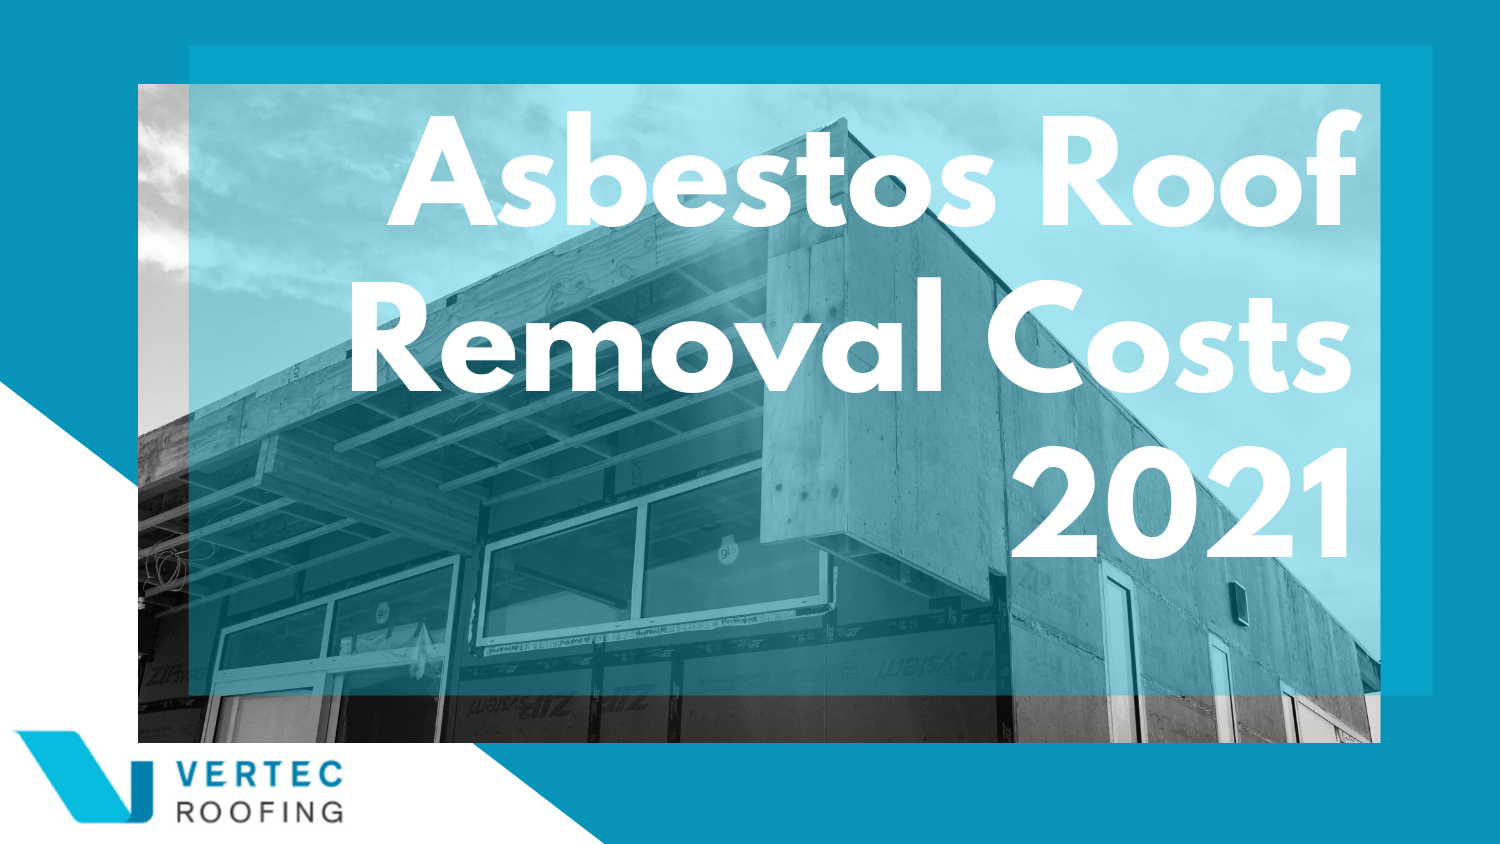 Asbestos Roof Removal Costs 2021